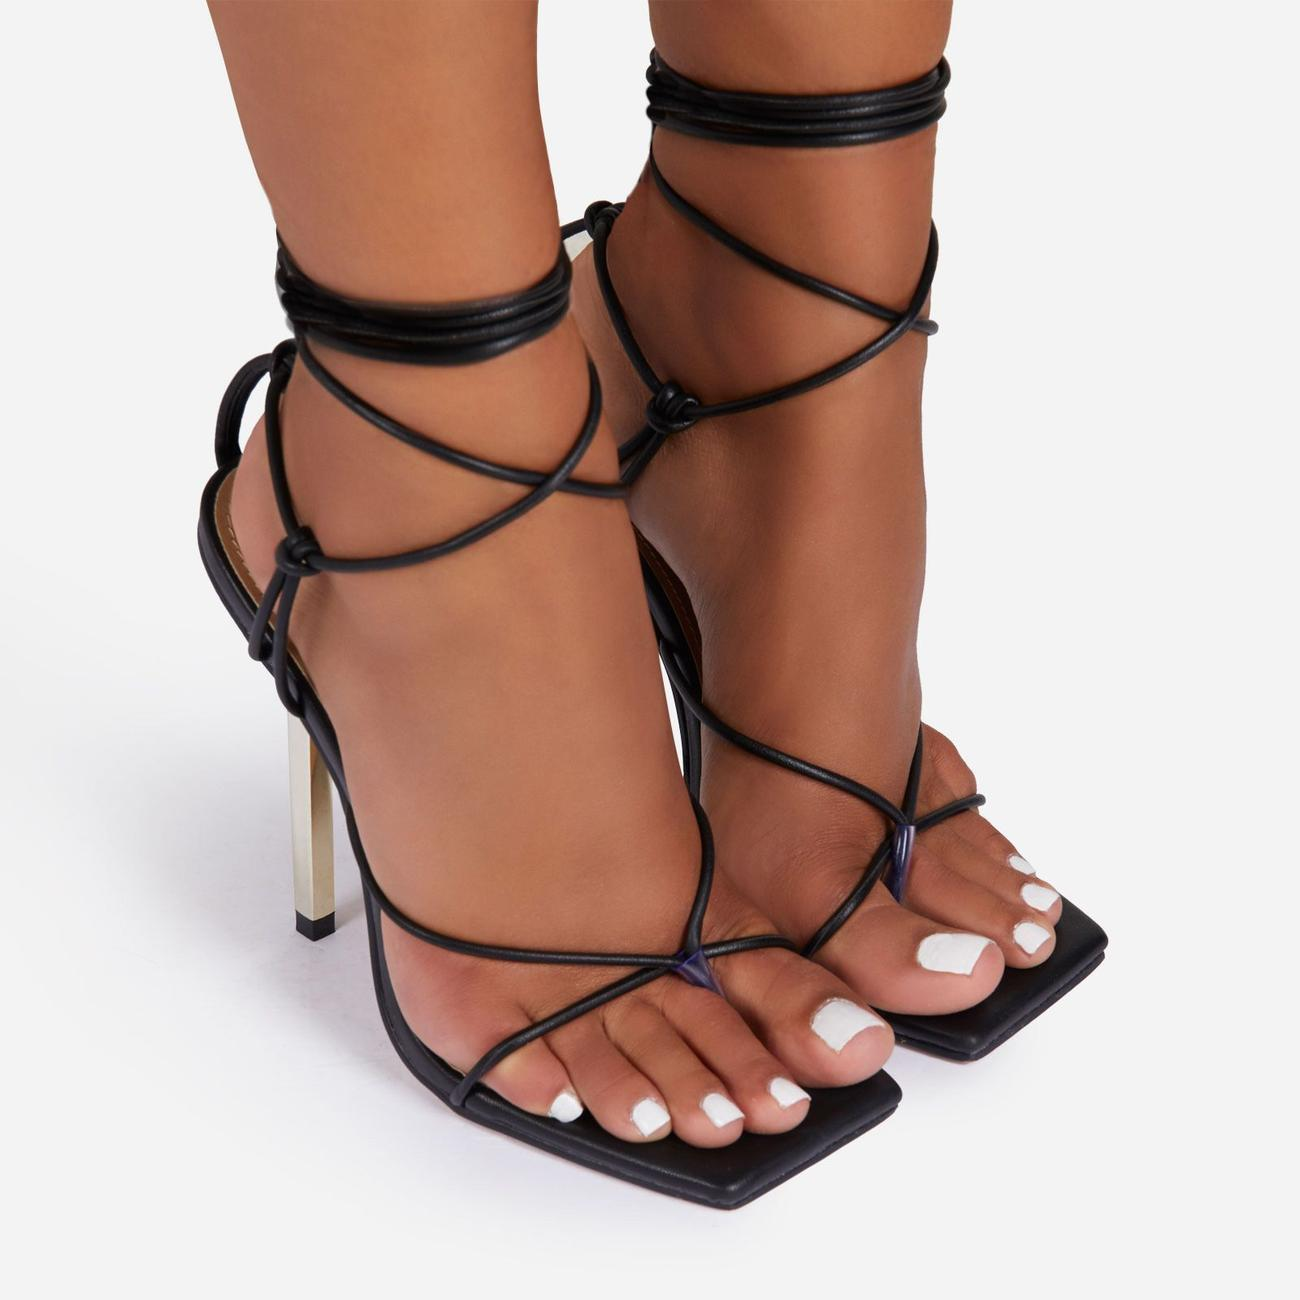 Raven Knotted Detail Lace Up Square Toe Metallic Heel In Black Faux Leather Image 3